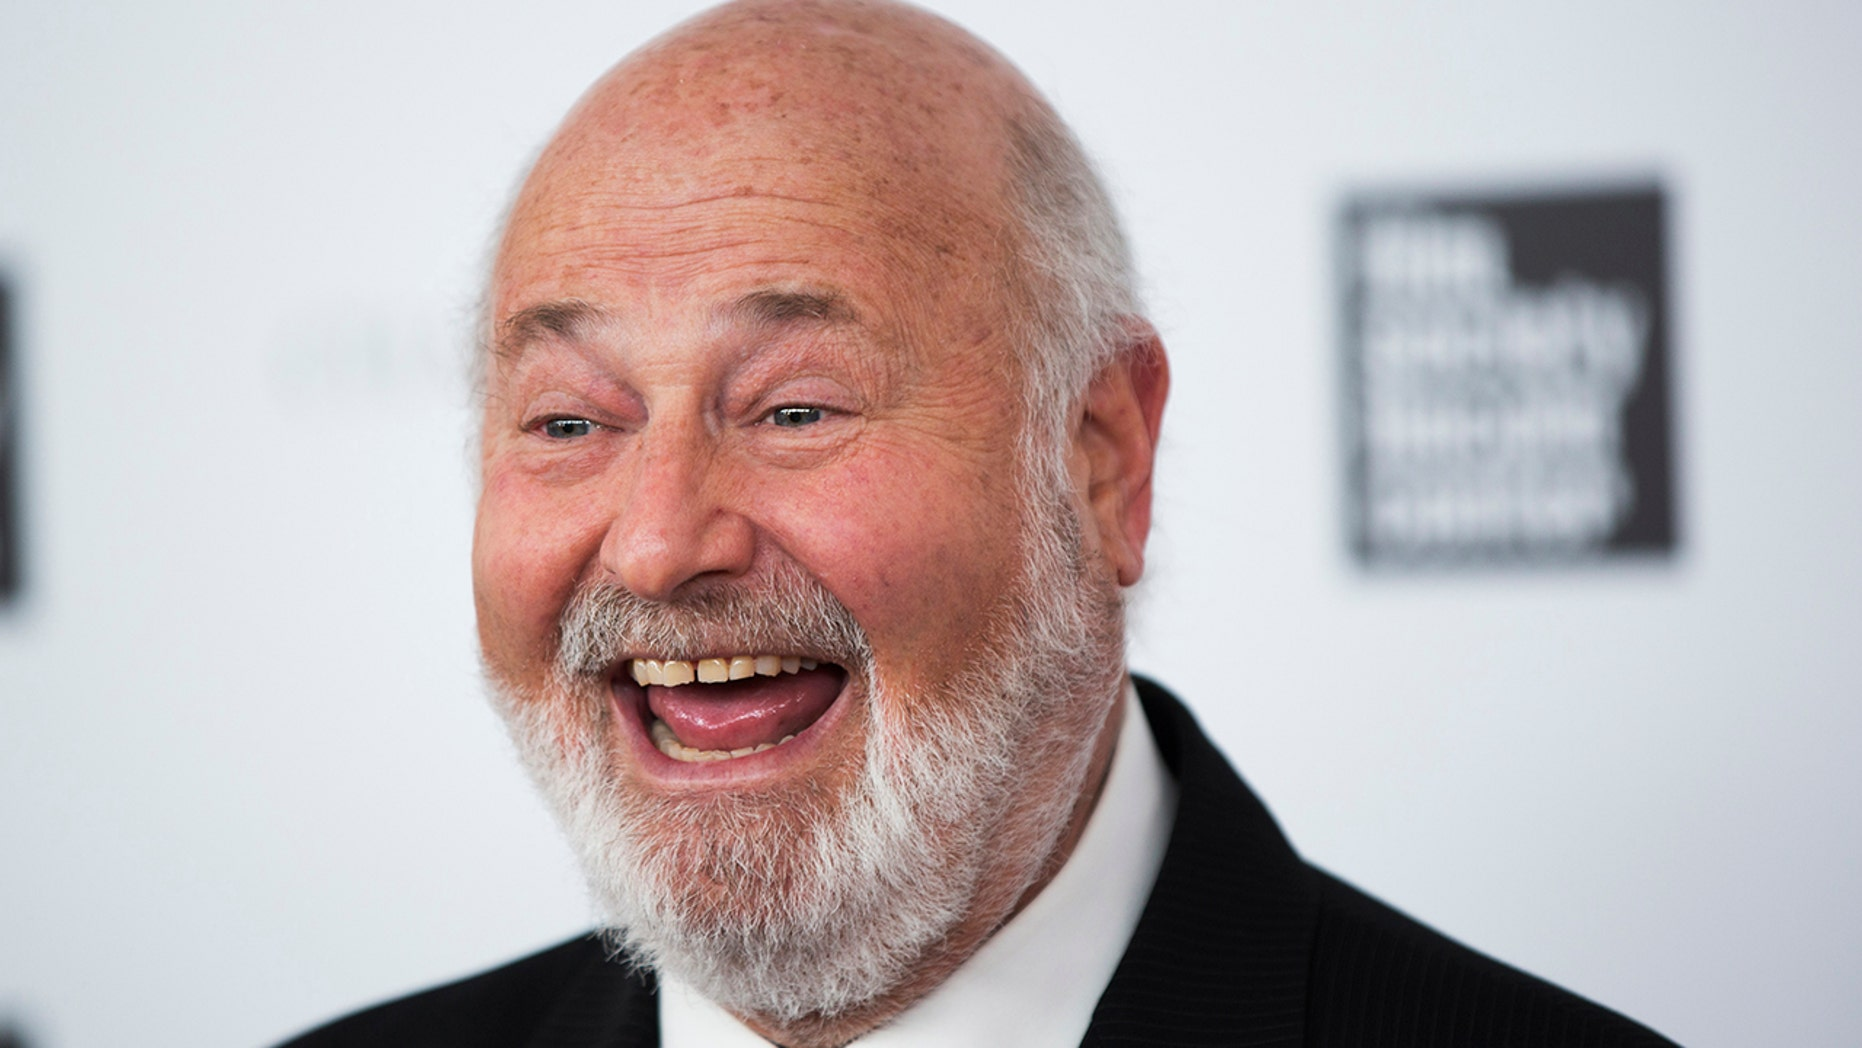 rob reiner launches committee to investigate if russia meddled with